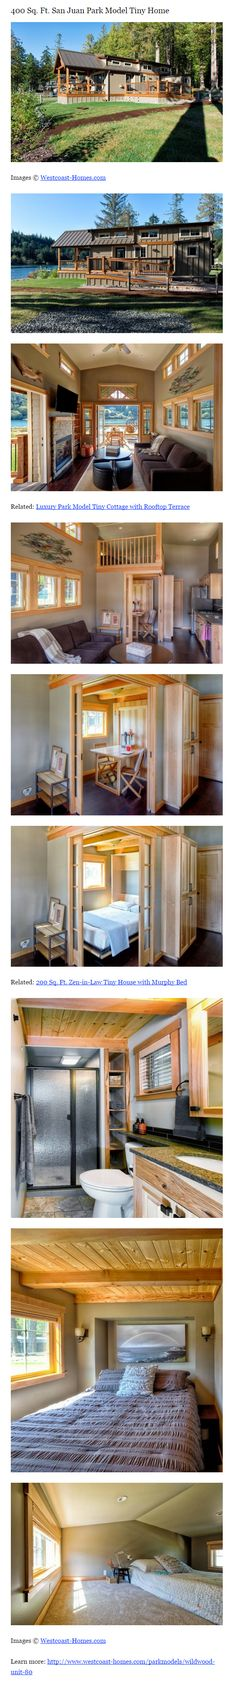 400 Sq. Ft. San Juan Park Model Tiny Home - http://tinyhousetalk.com/400-sq-ft-san-juan-park-model-tiny-home/